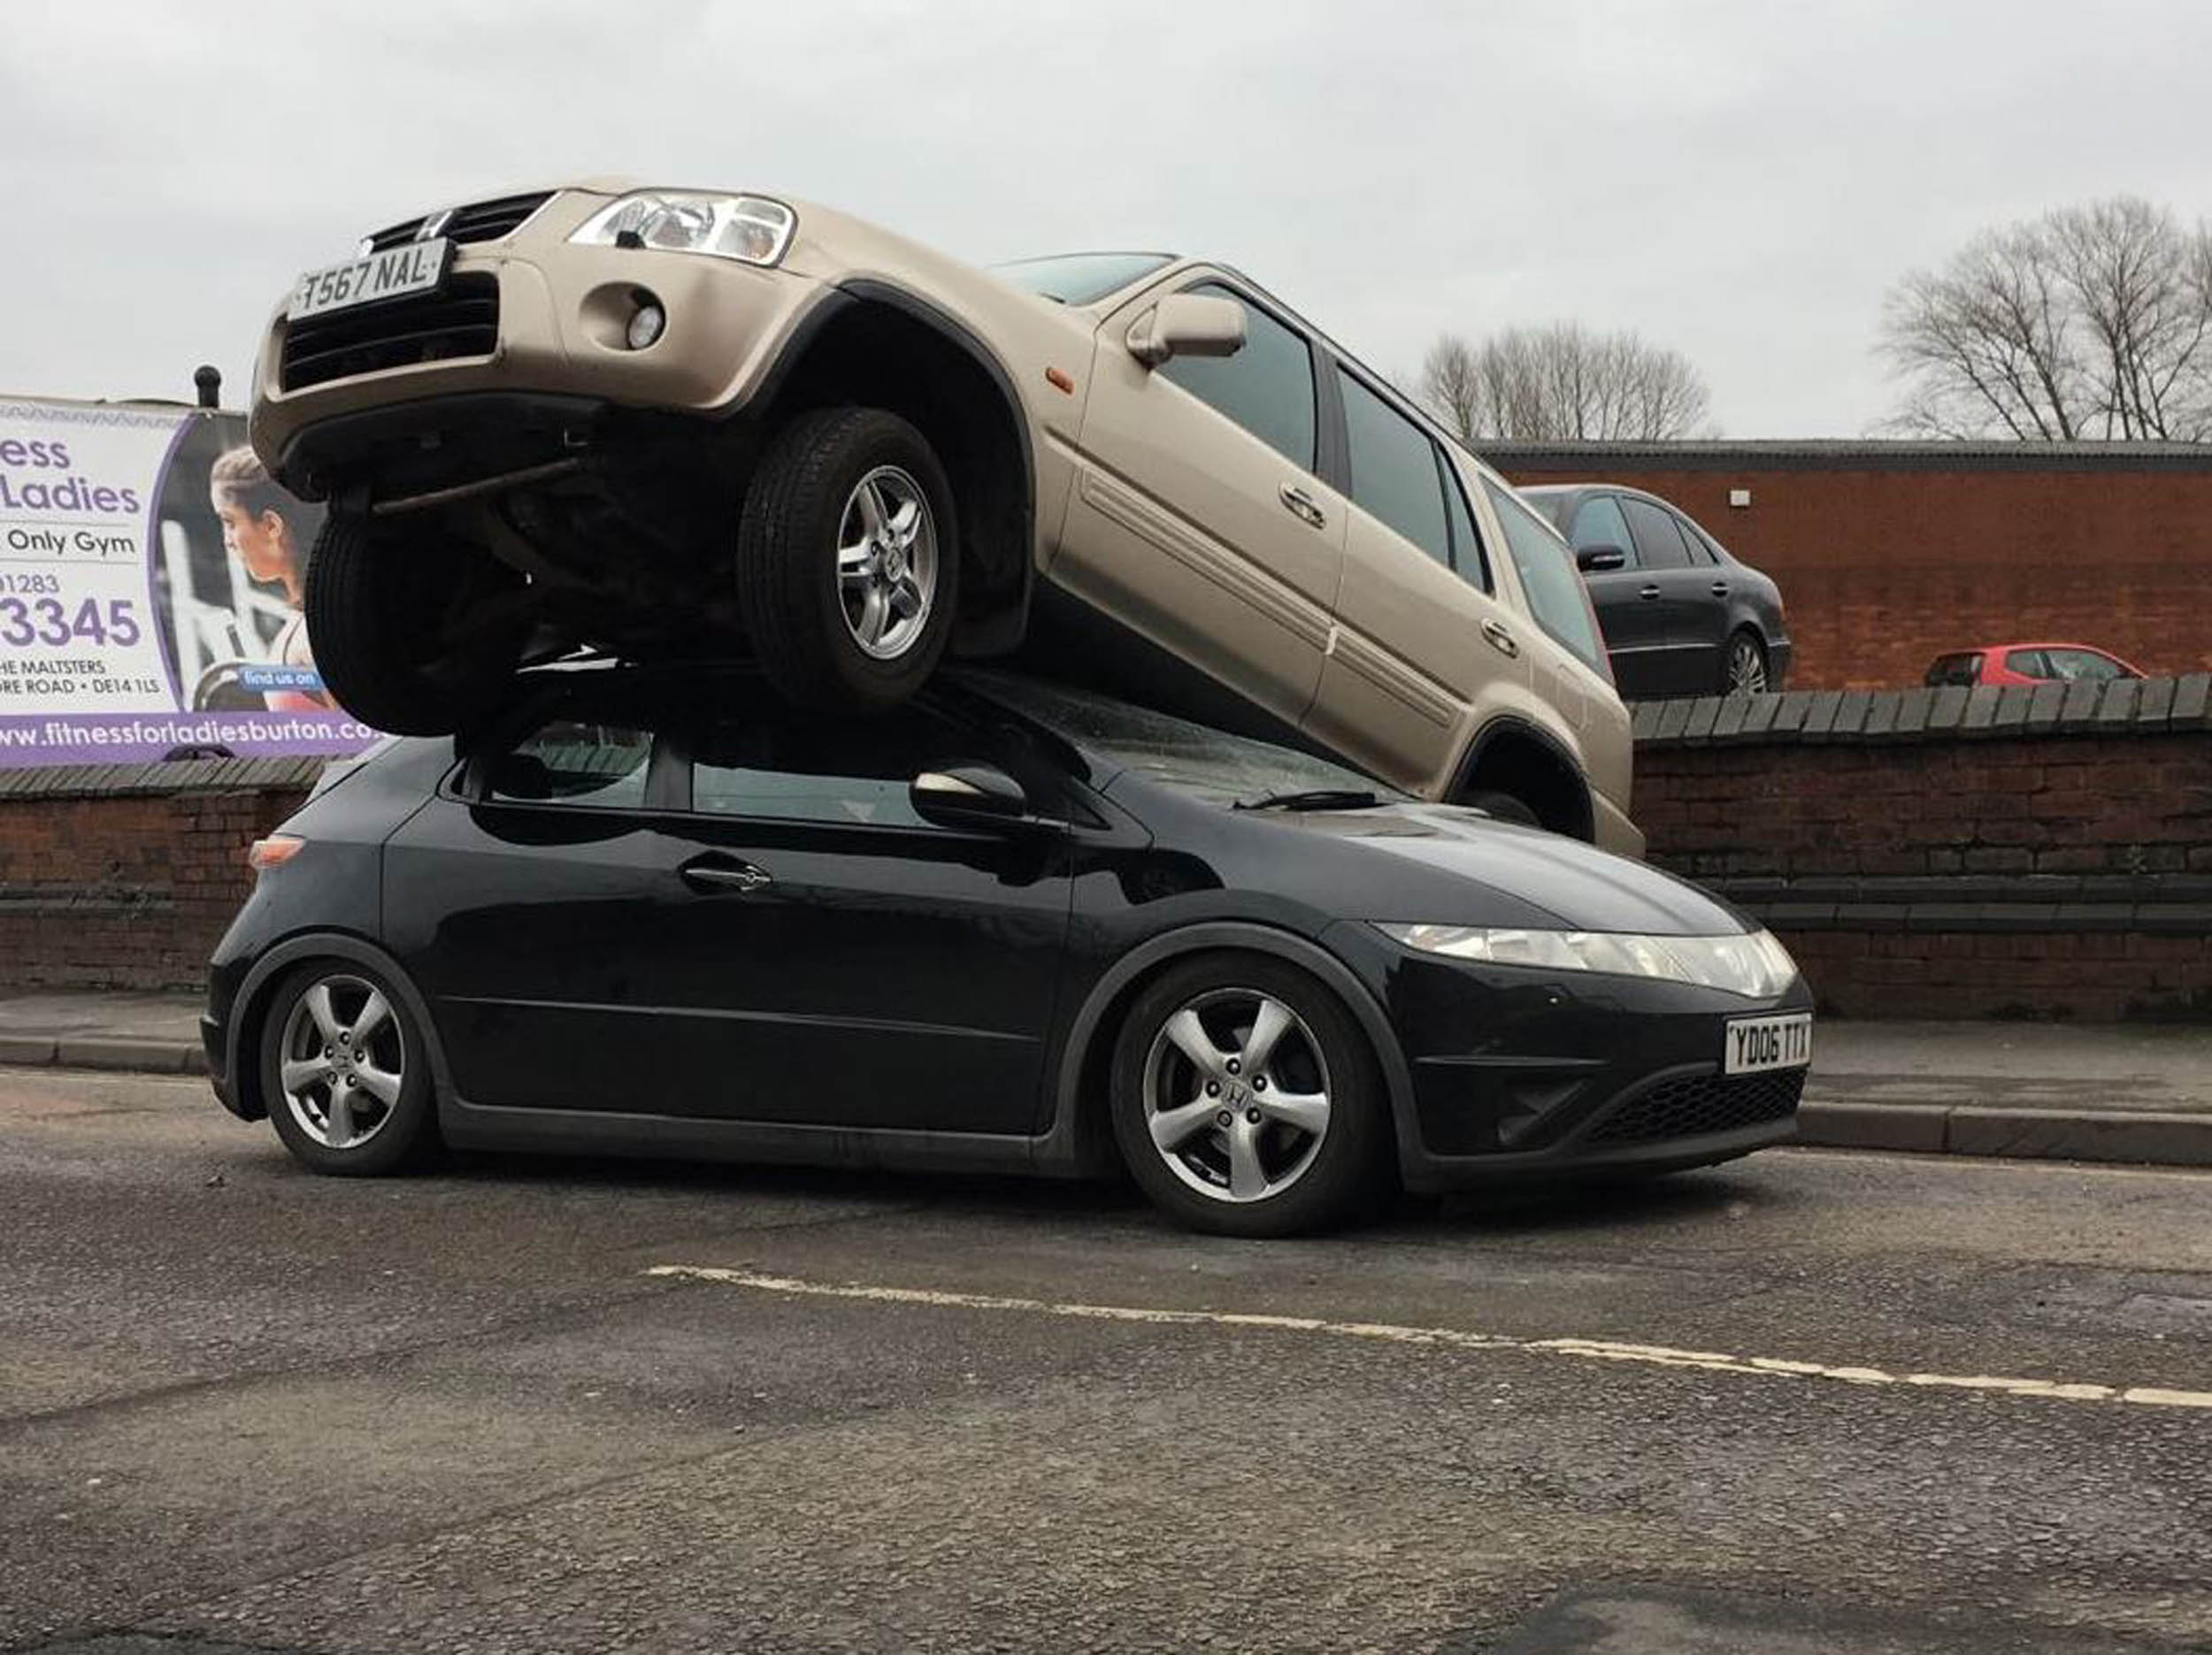 amazing aftermath of suv rocketing from mot test centre and on a spokesman for west midlands ambulance service said the 55 year old w in the bottom car was uninjured and the ambulance service took her home